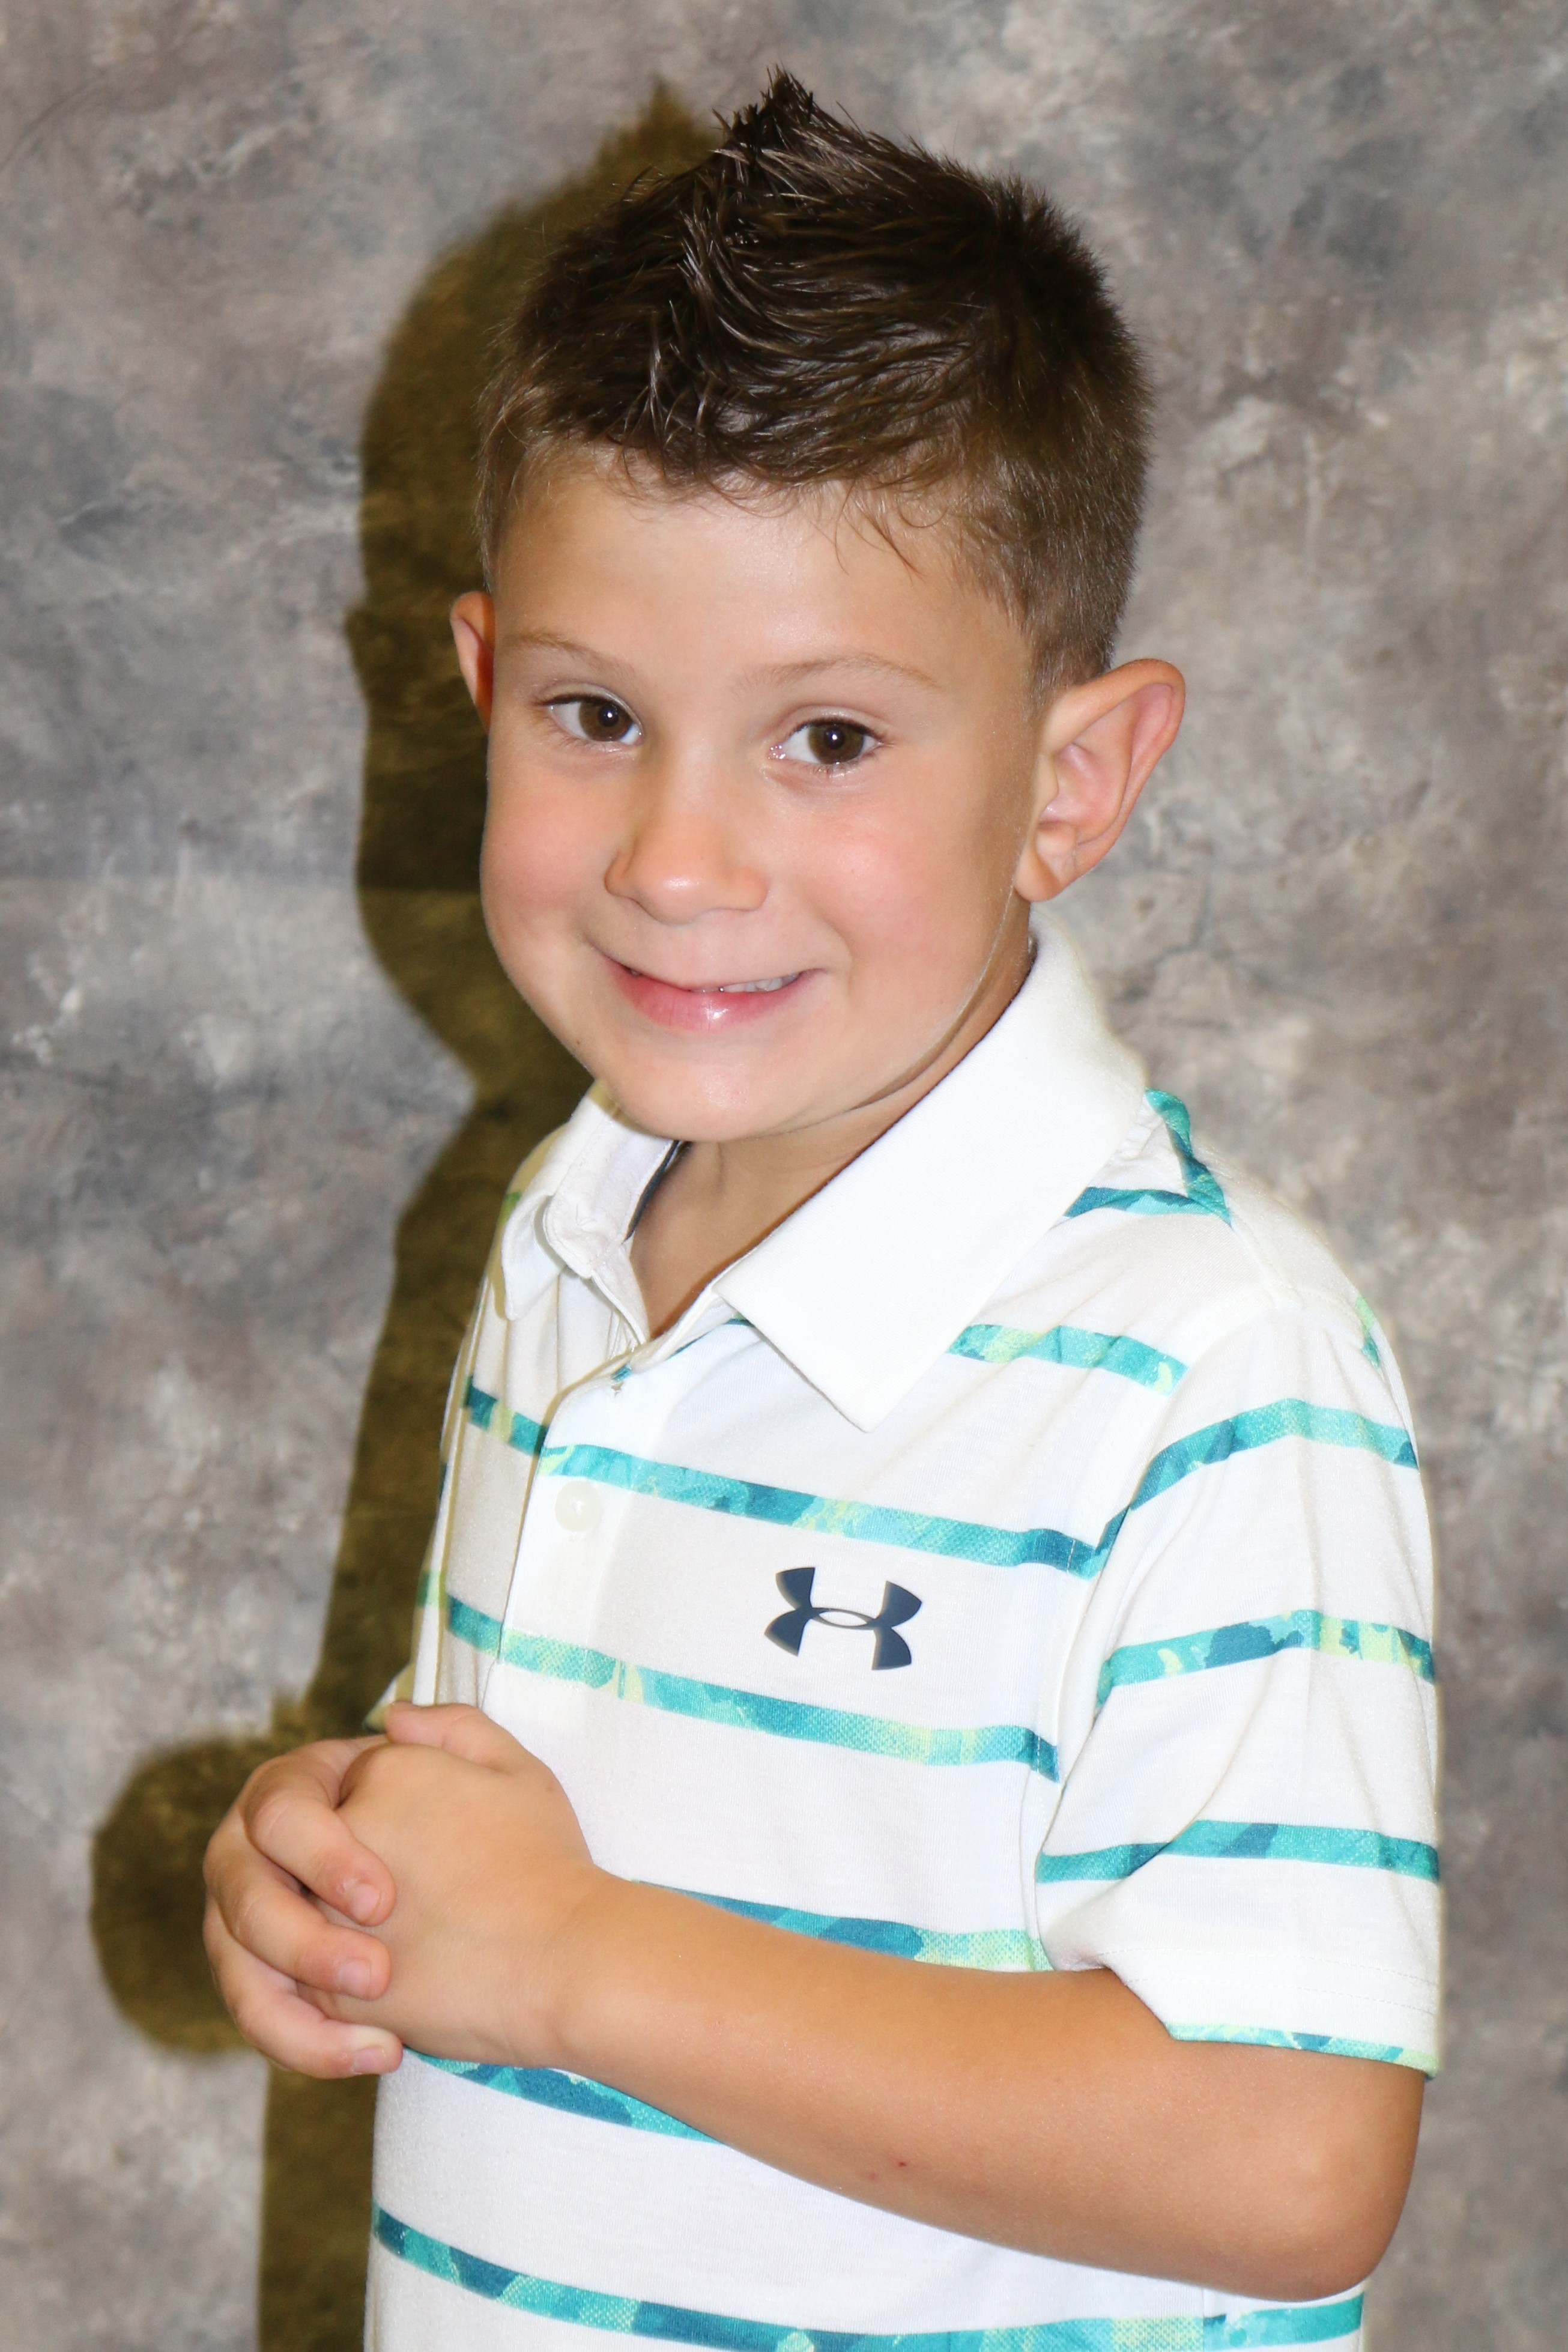 Little Mister Contestant - Liam Staats 6